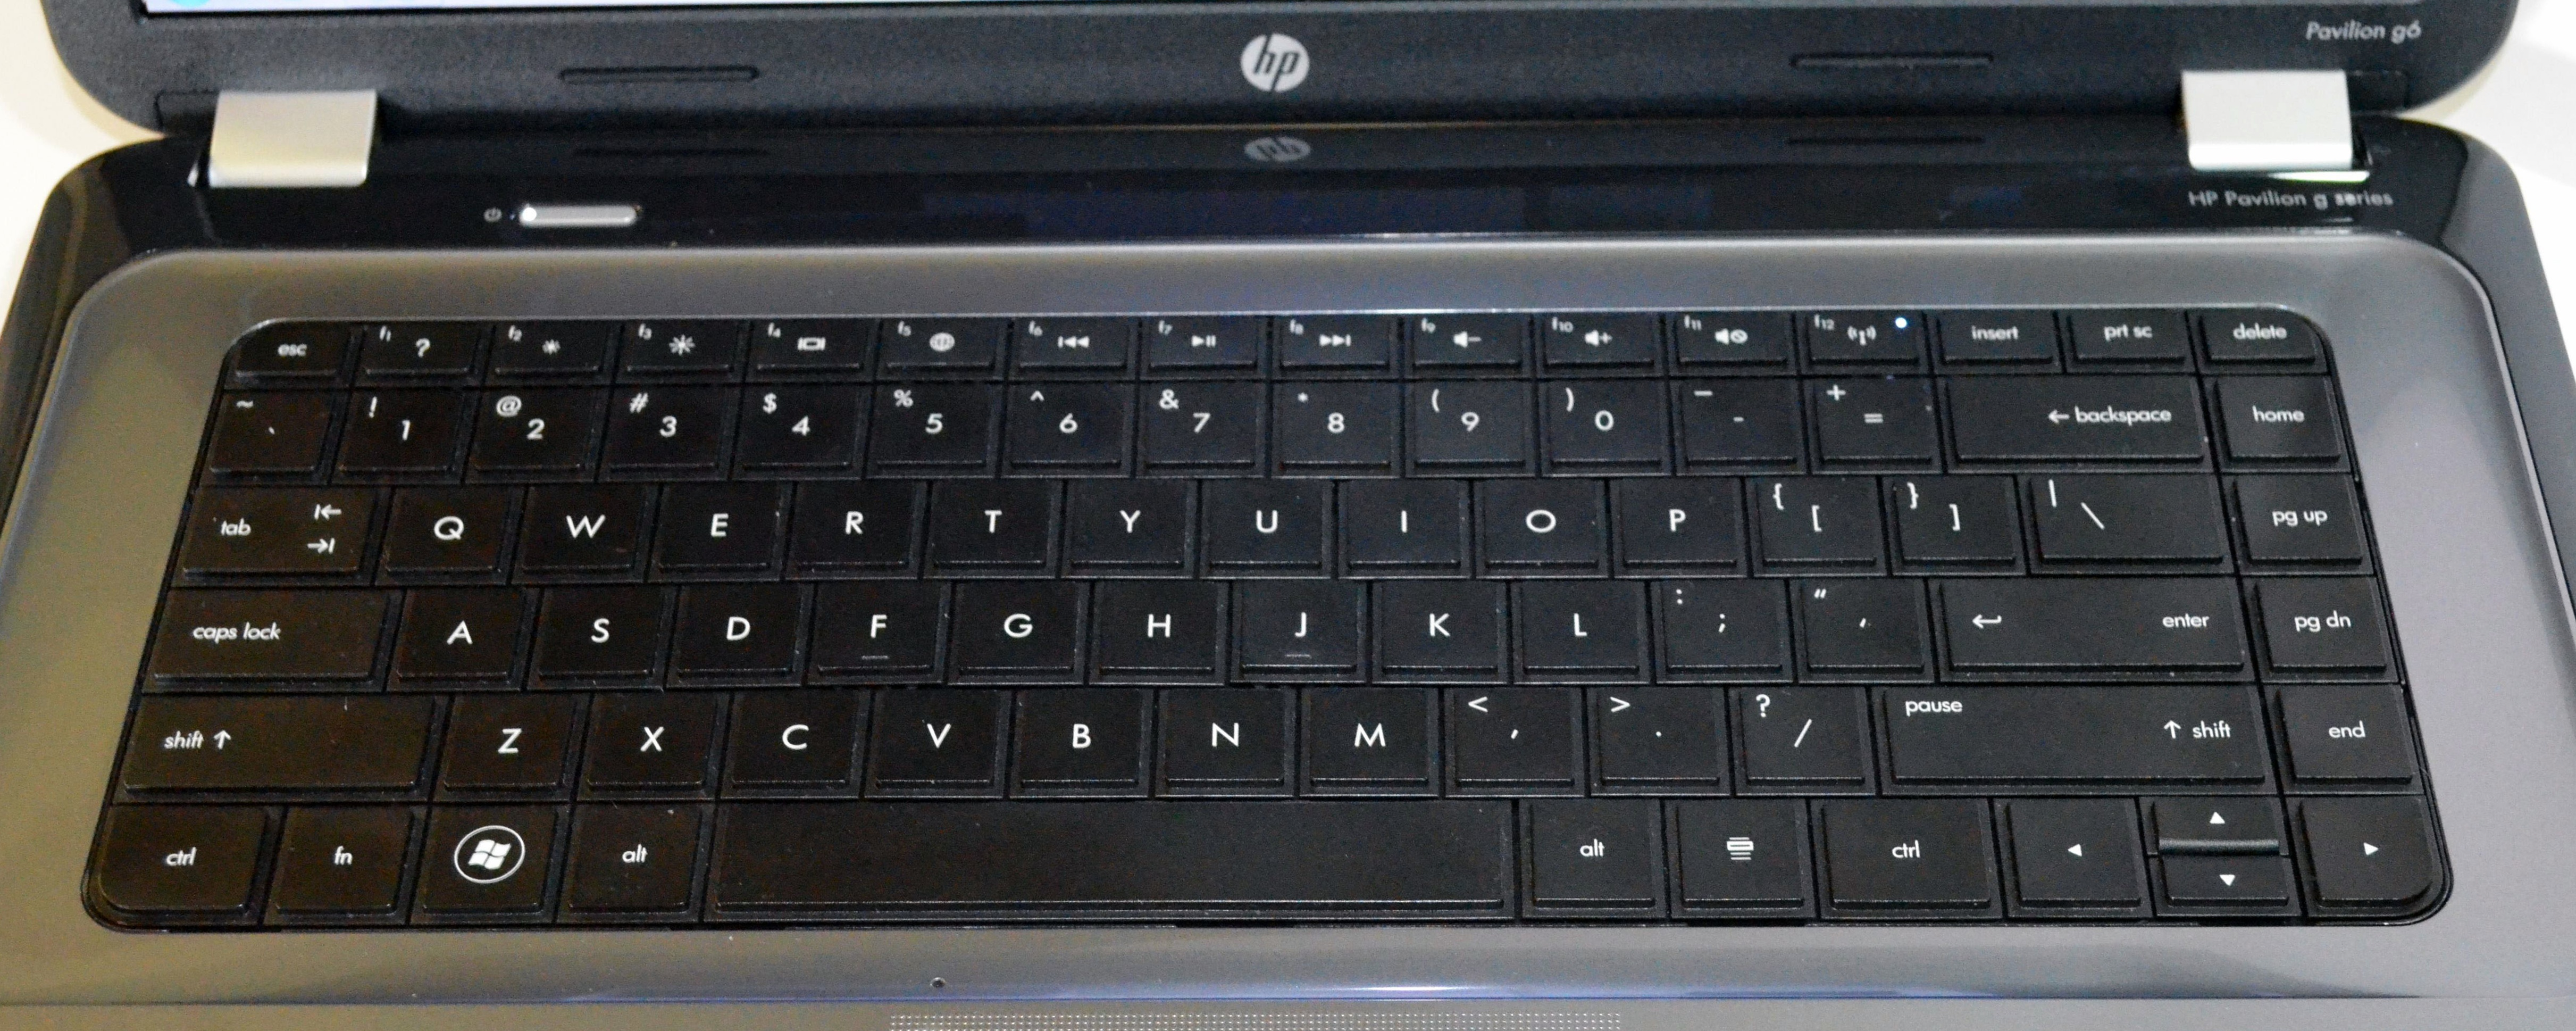 HP Pavilion g6 Review: Budget Notebook Without the Budget Feel